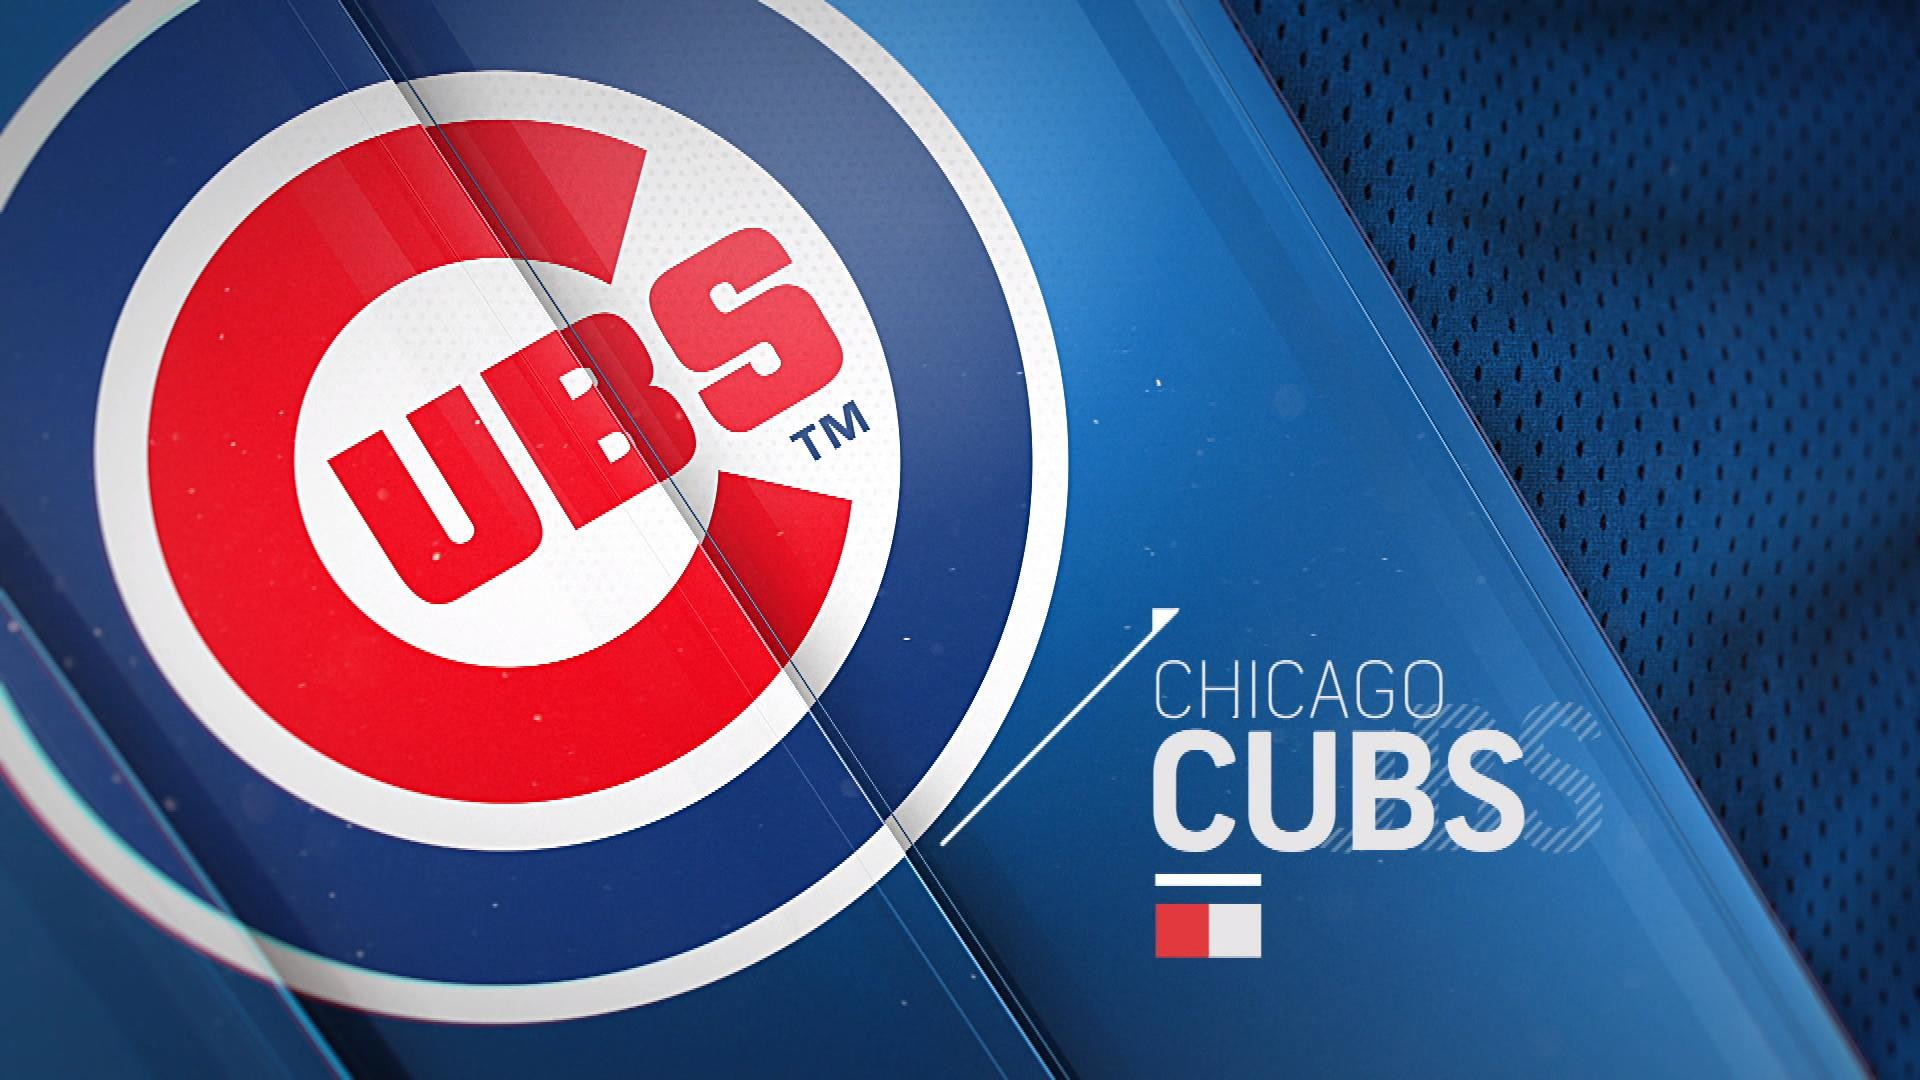 1920x1080 329 best images about The Chicago Cubs on Pinterest | Keep calm .